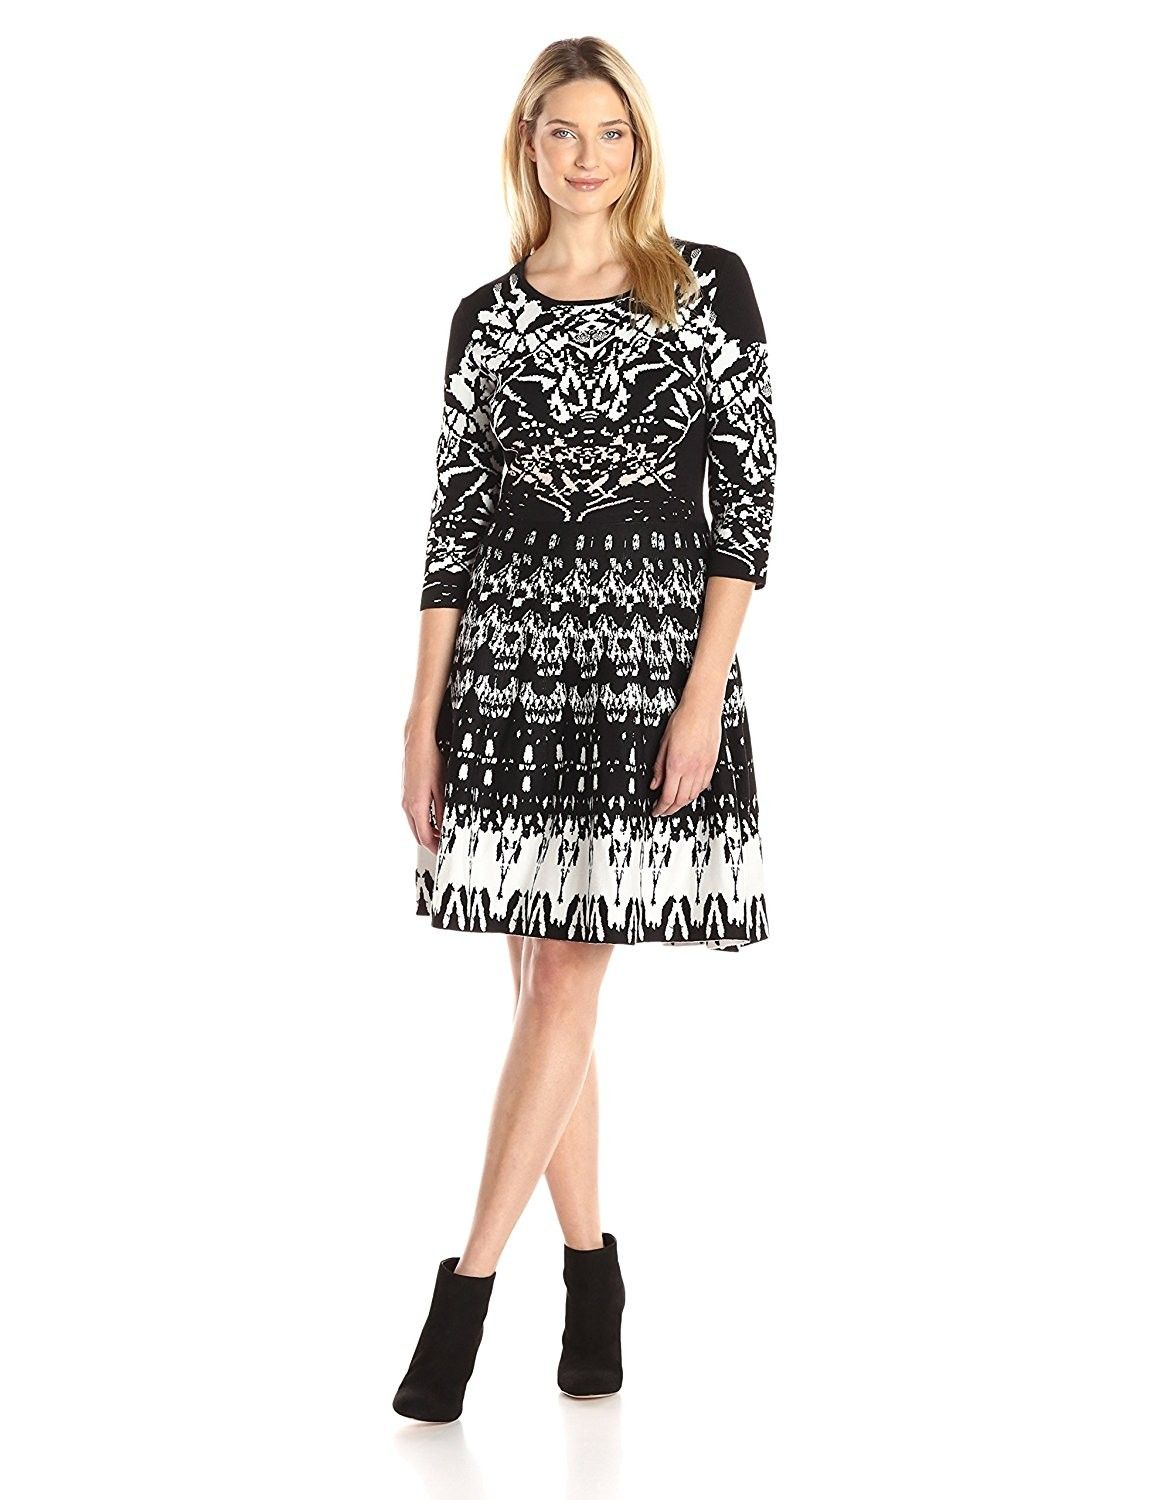 Women S 3 4 Sleeved Aztec Printed Sweater Dress Black Ivory Tan